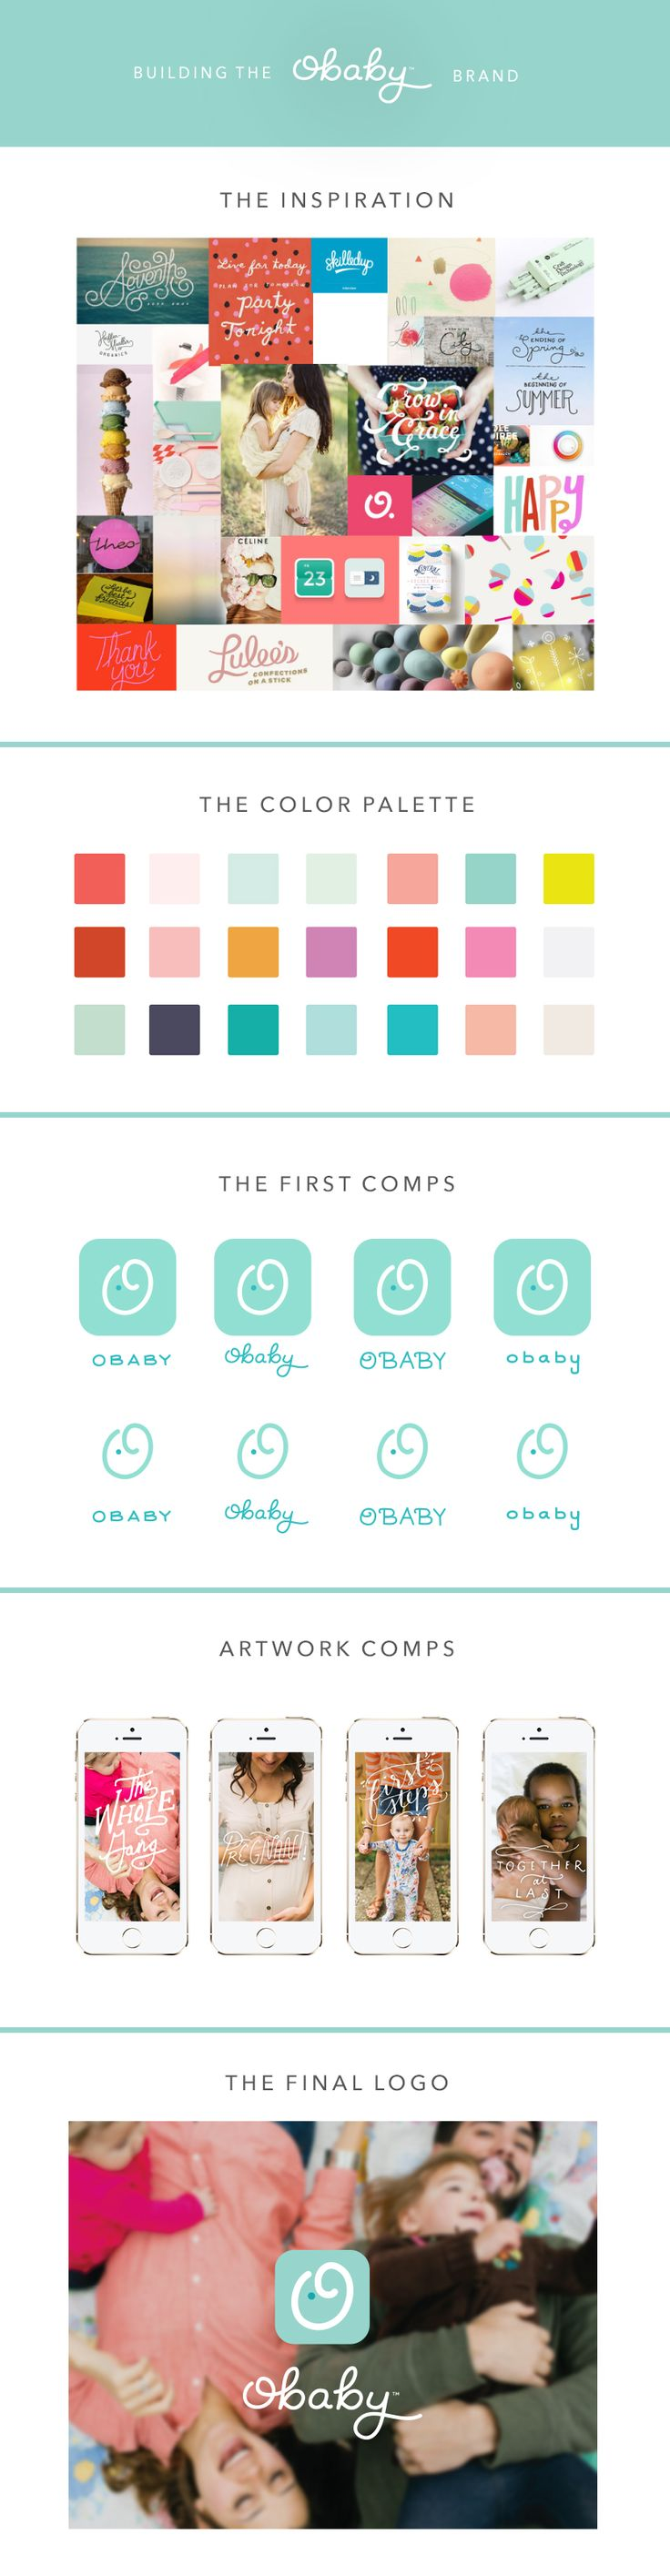 The Brand Building Process of making and creating Obaby |  The Fresh Exchange